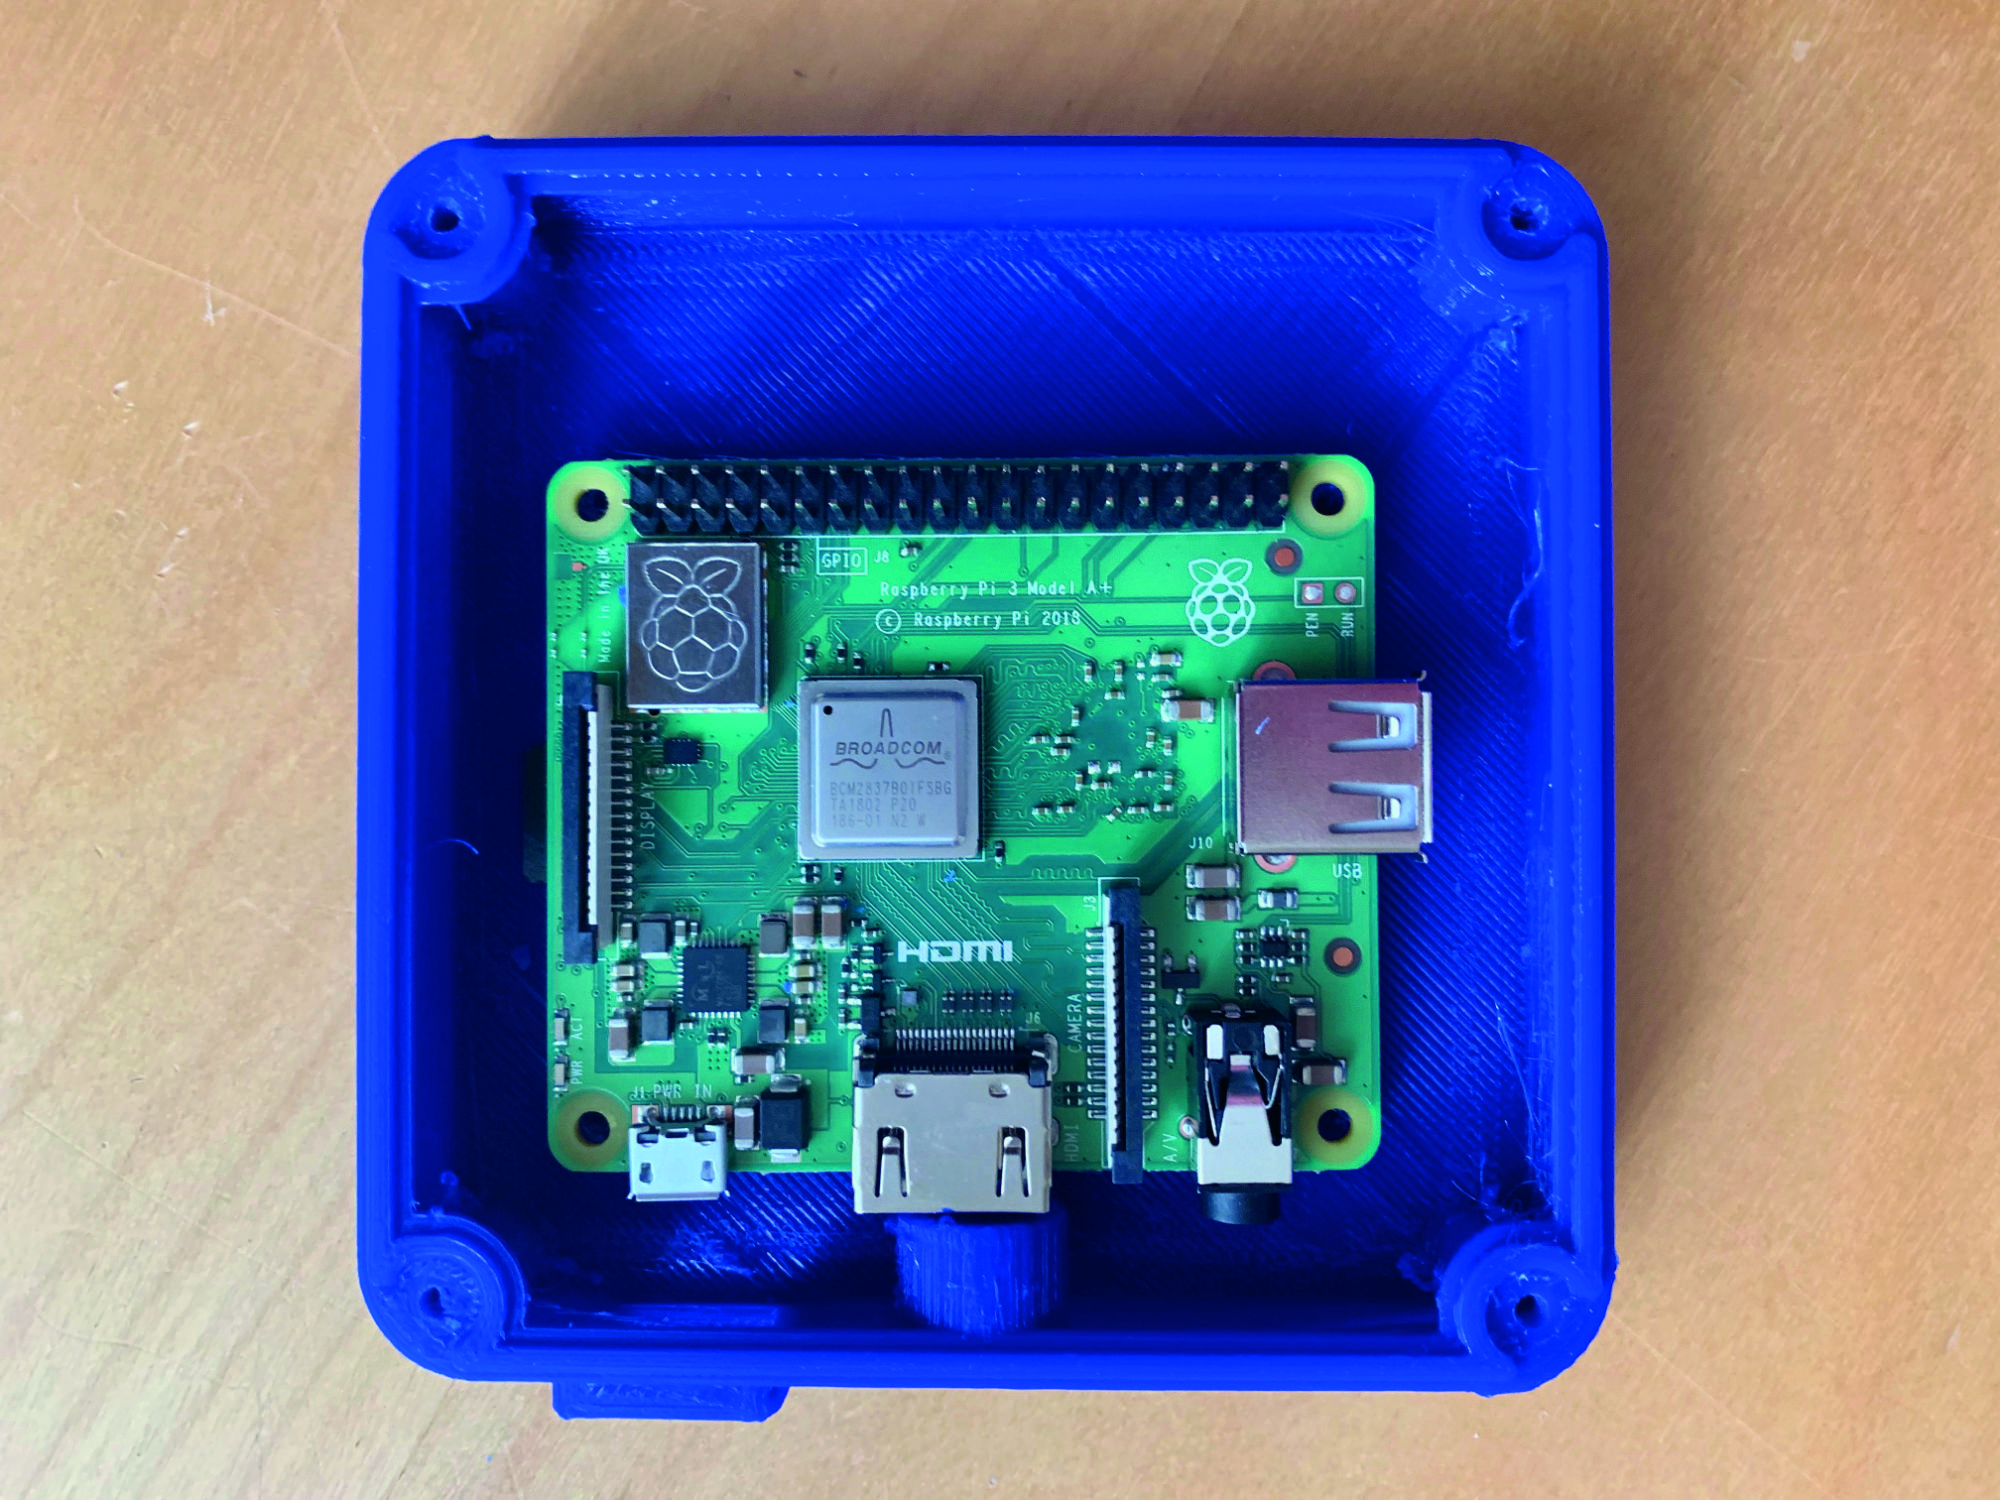 Protect your Raspberry Pi with a waterproof case